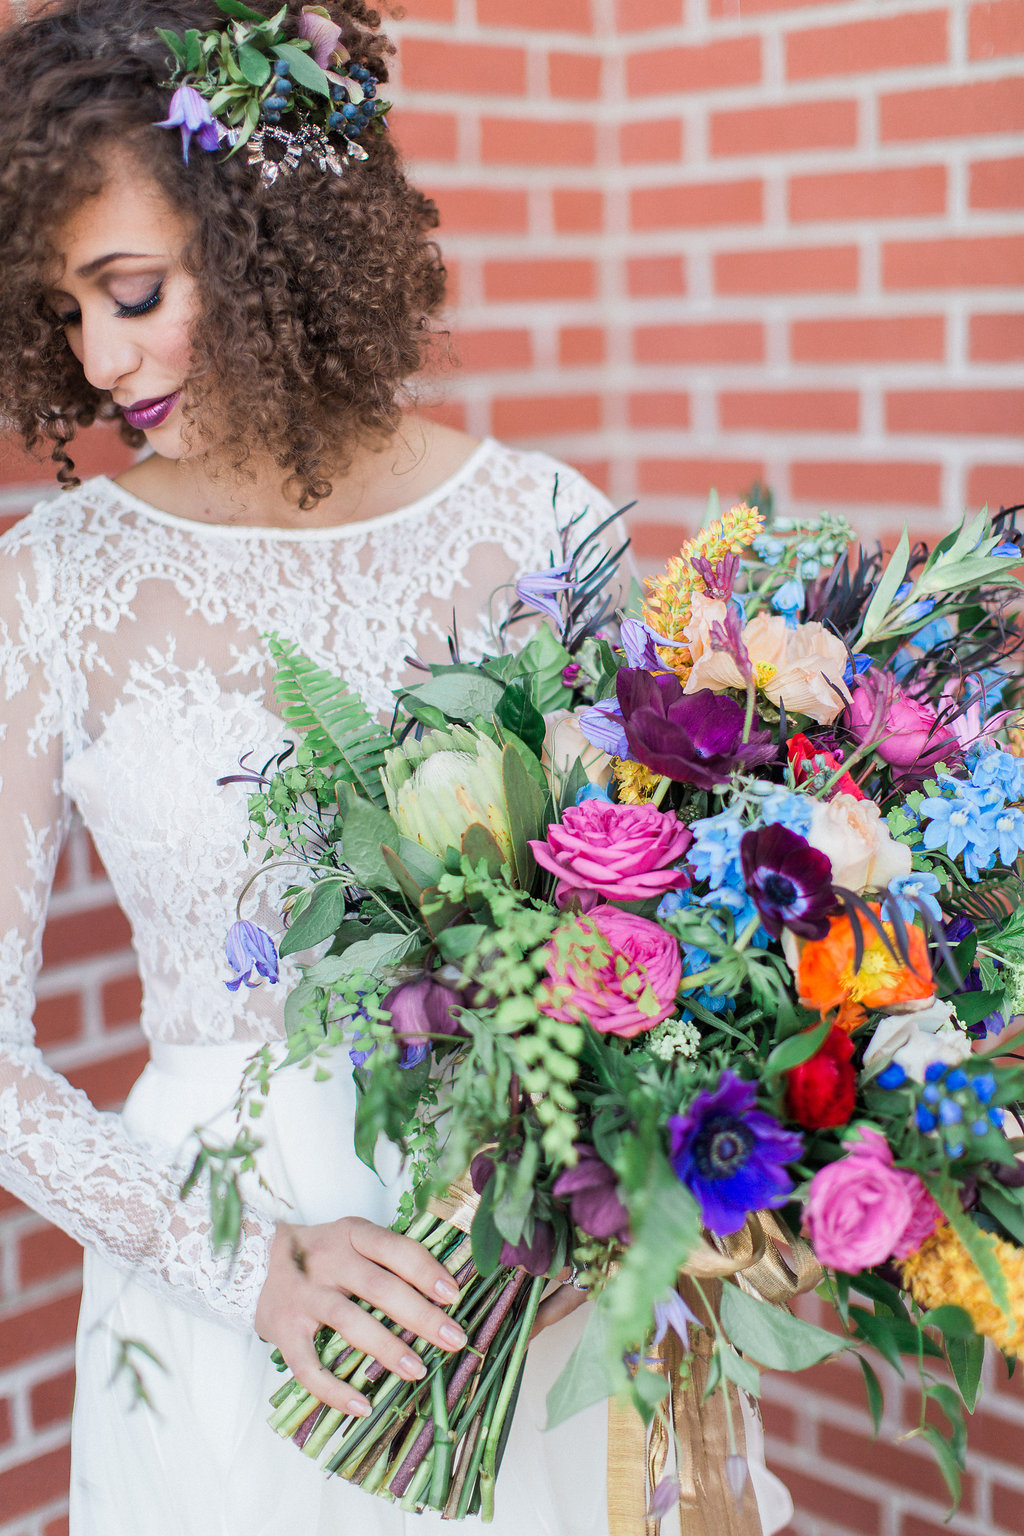 7 Vibrant Bridal Bouquets In Multiple Shades